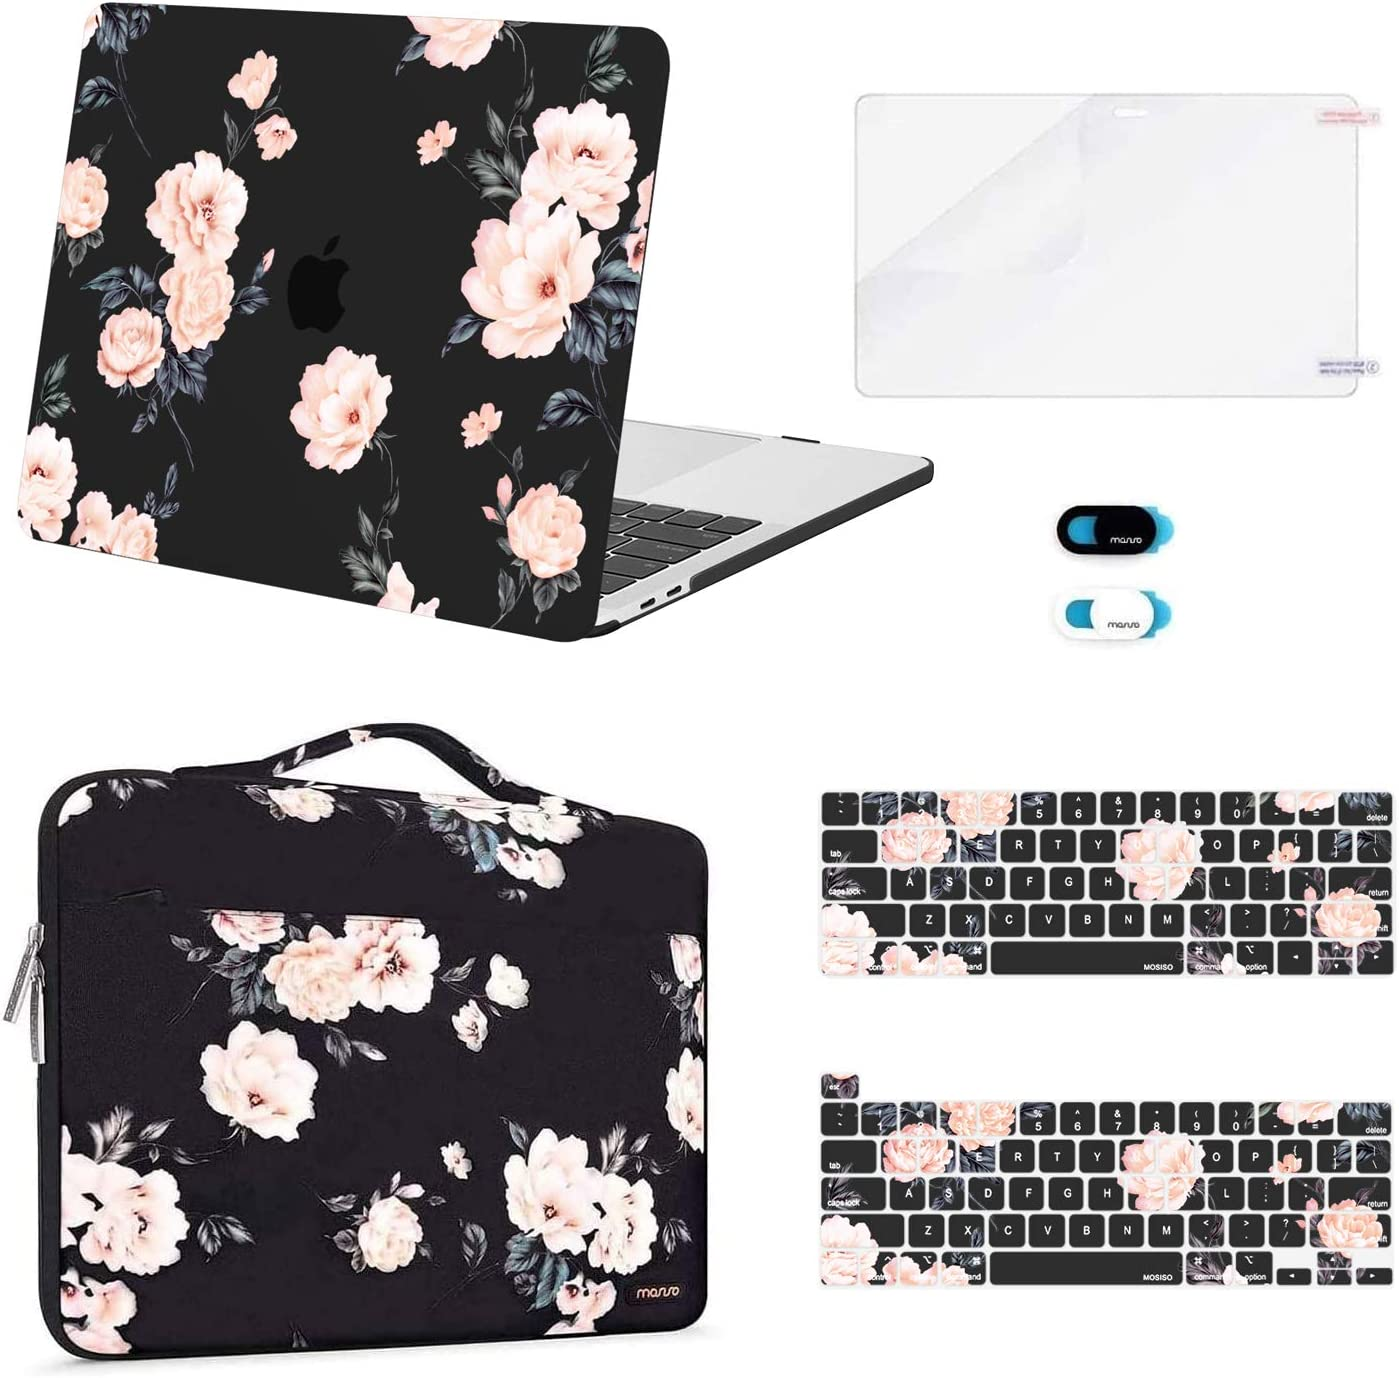 MOSISO Compatible with MacBook Pro 13 inch Case 2016-2020 Release A2338 M1 A2289 A2251 A2159 A1989 A1706 A1708, Plastic Camellia Hard Shell Case&Bag&Keyboard Skin&Webcam Cover&Screen Protector, Black